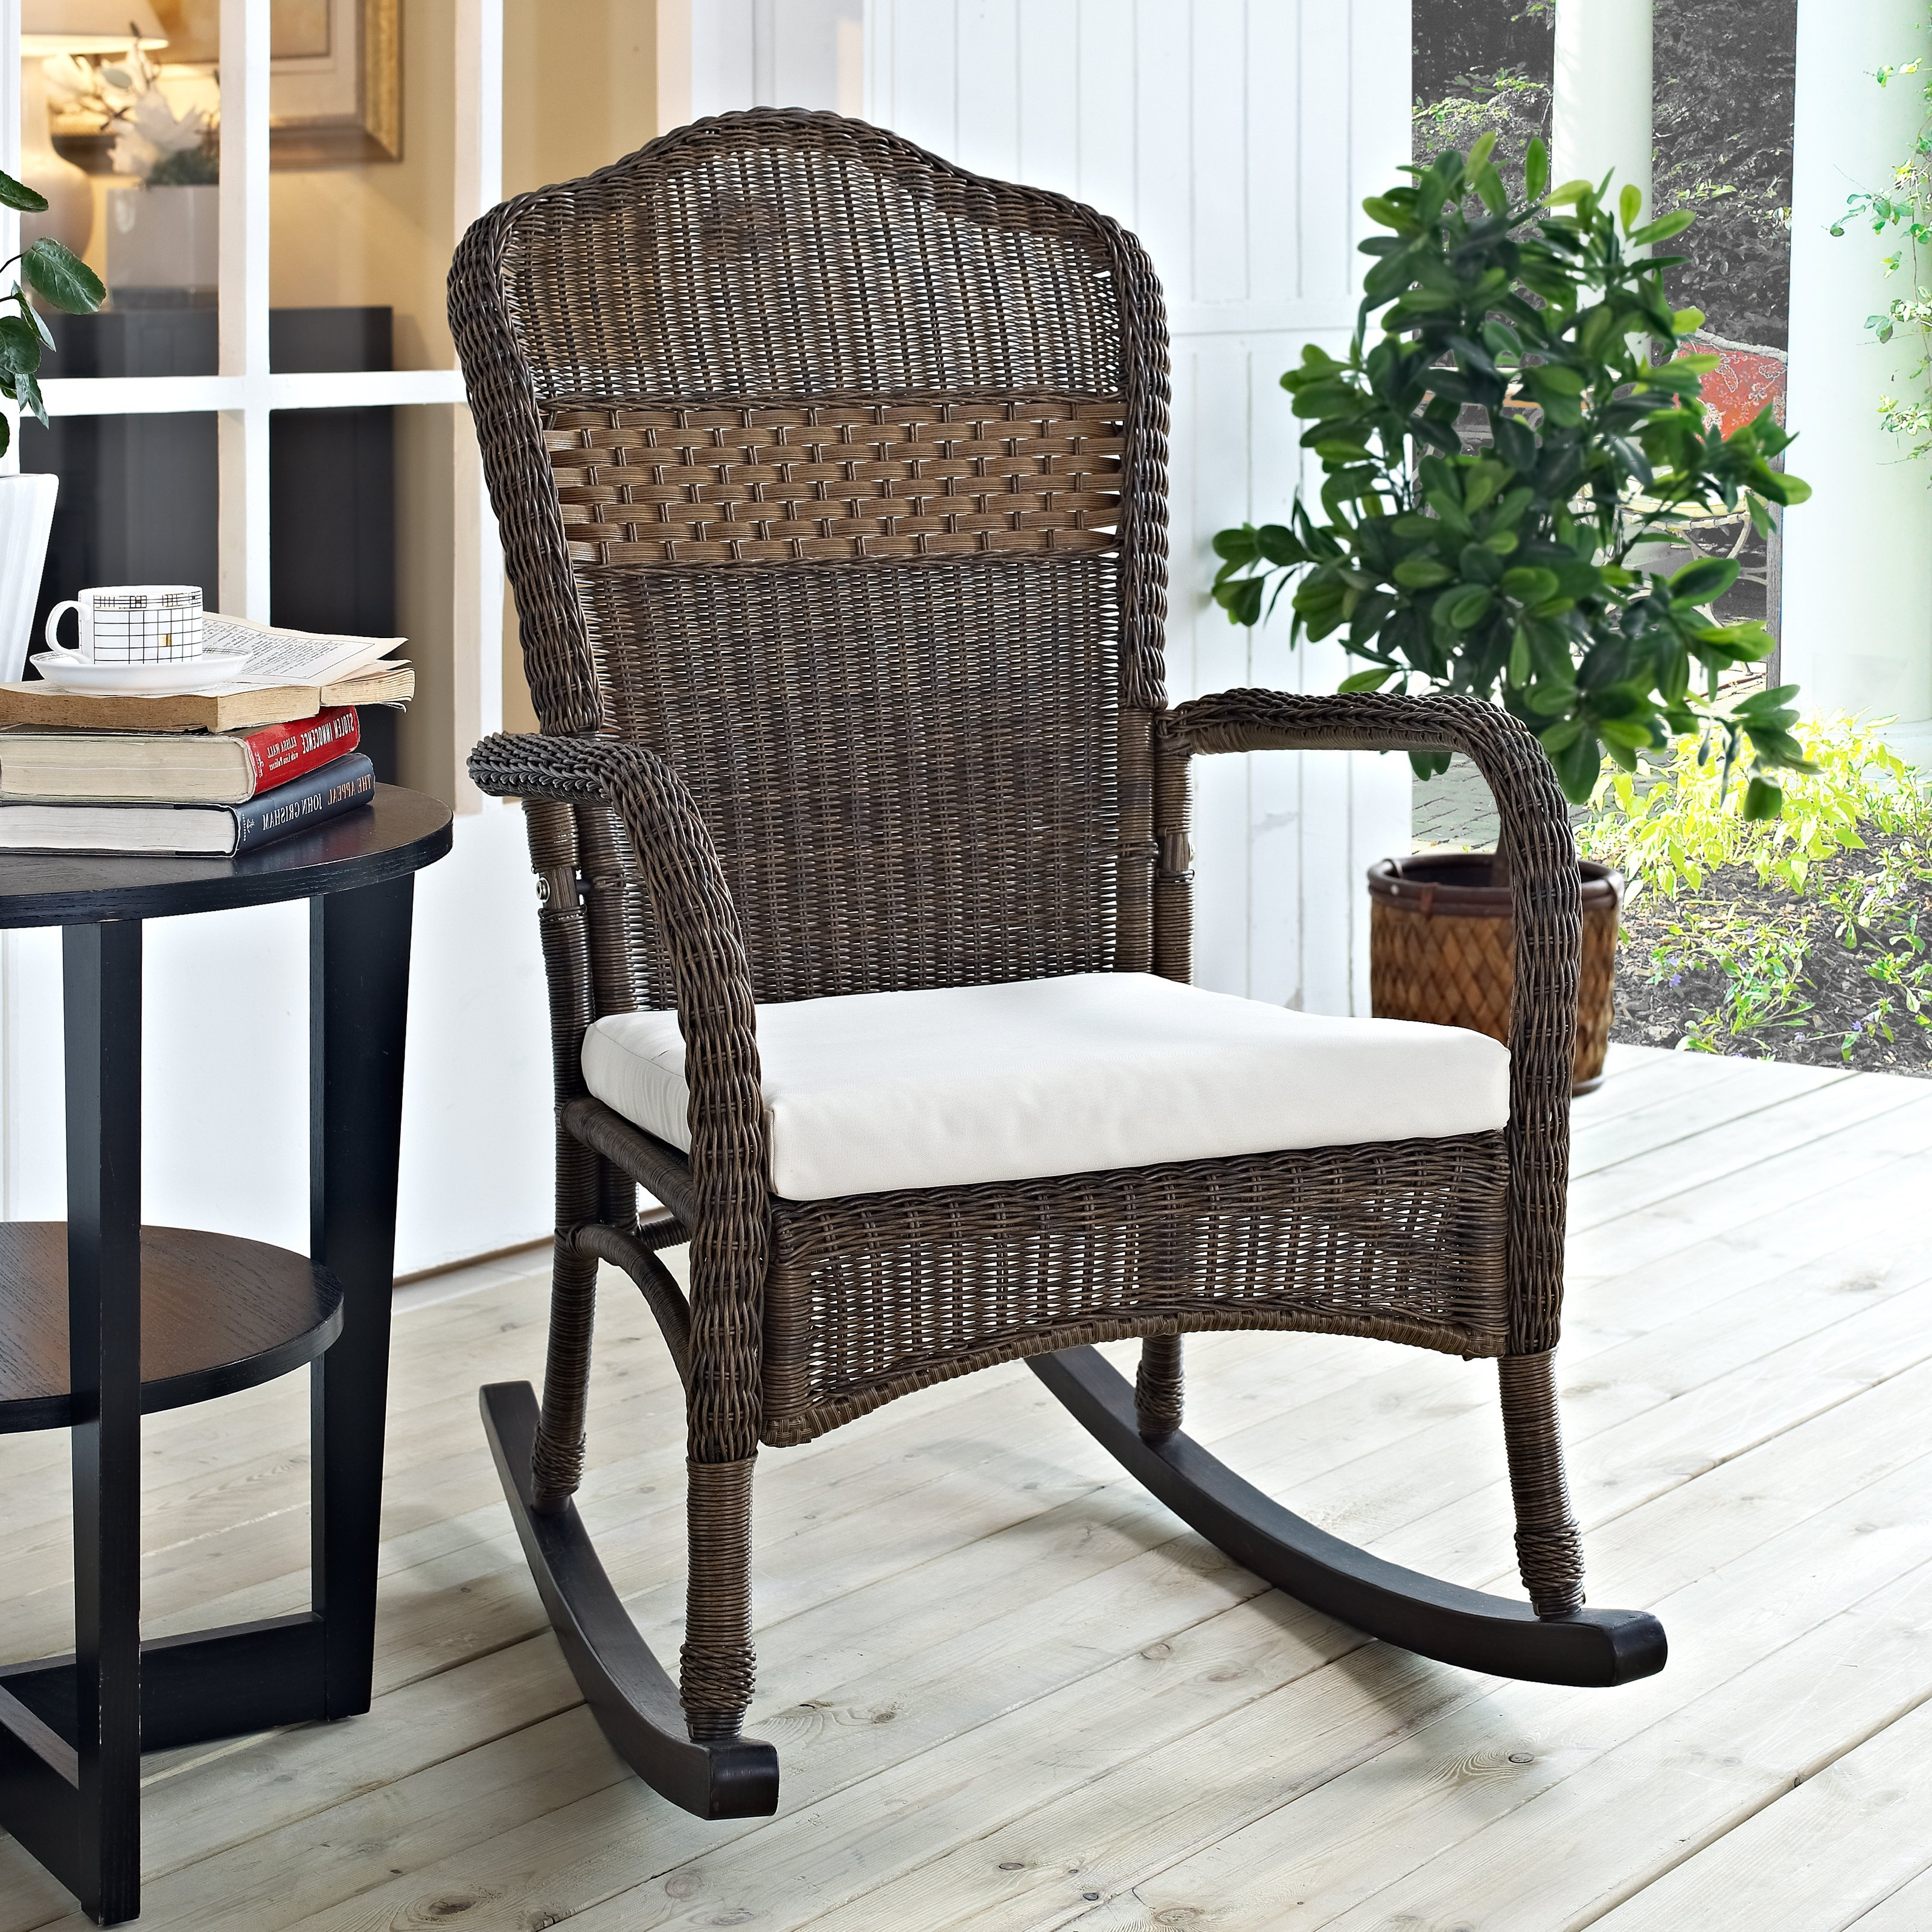 Wicker Rocking Chairs And Ottoman for Well-known Coral Coast Mocha Resin Wicker Rocking Chair With Beige Cushion